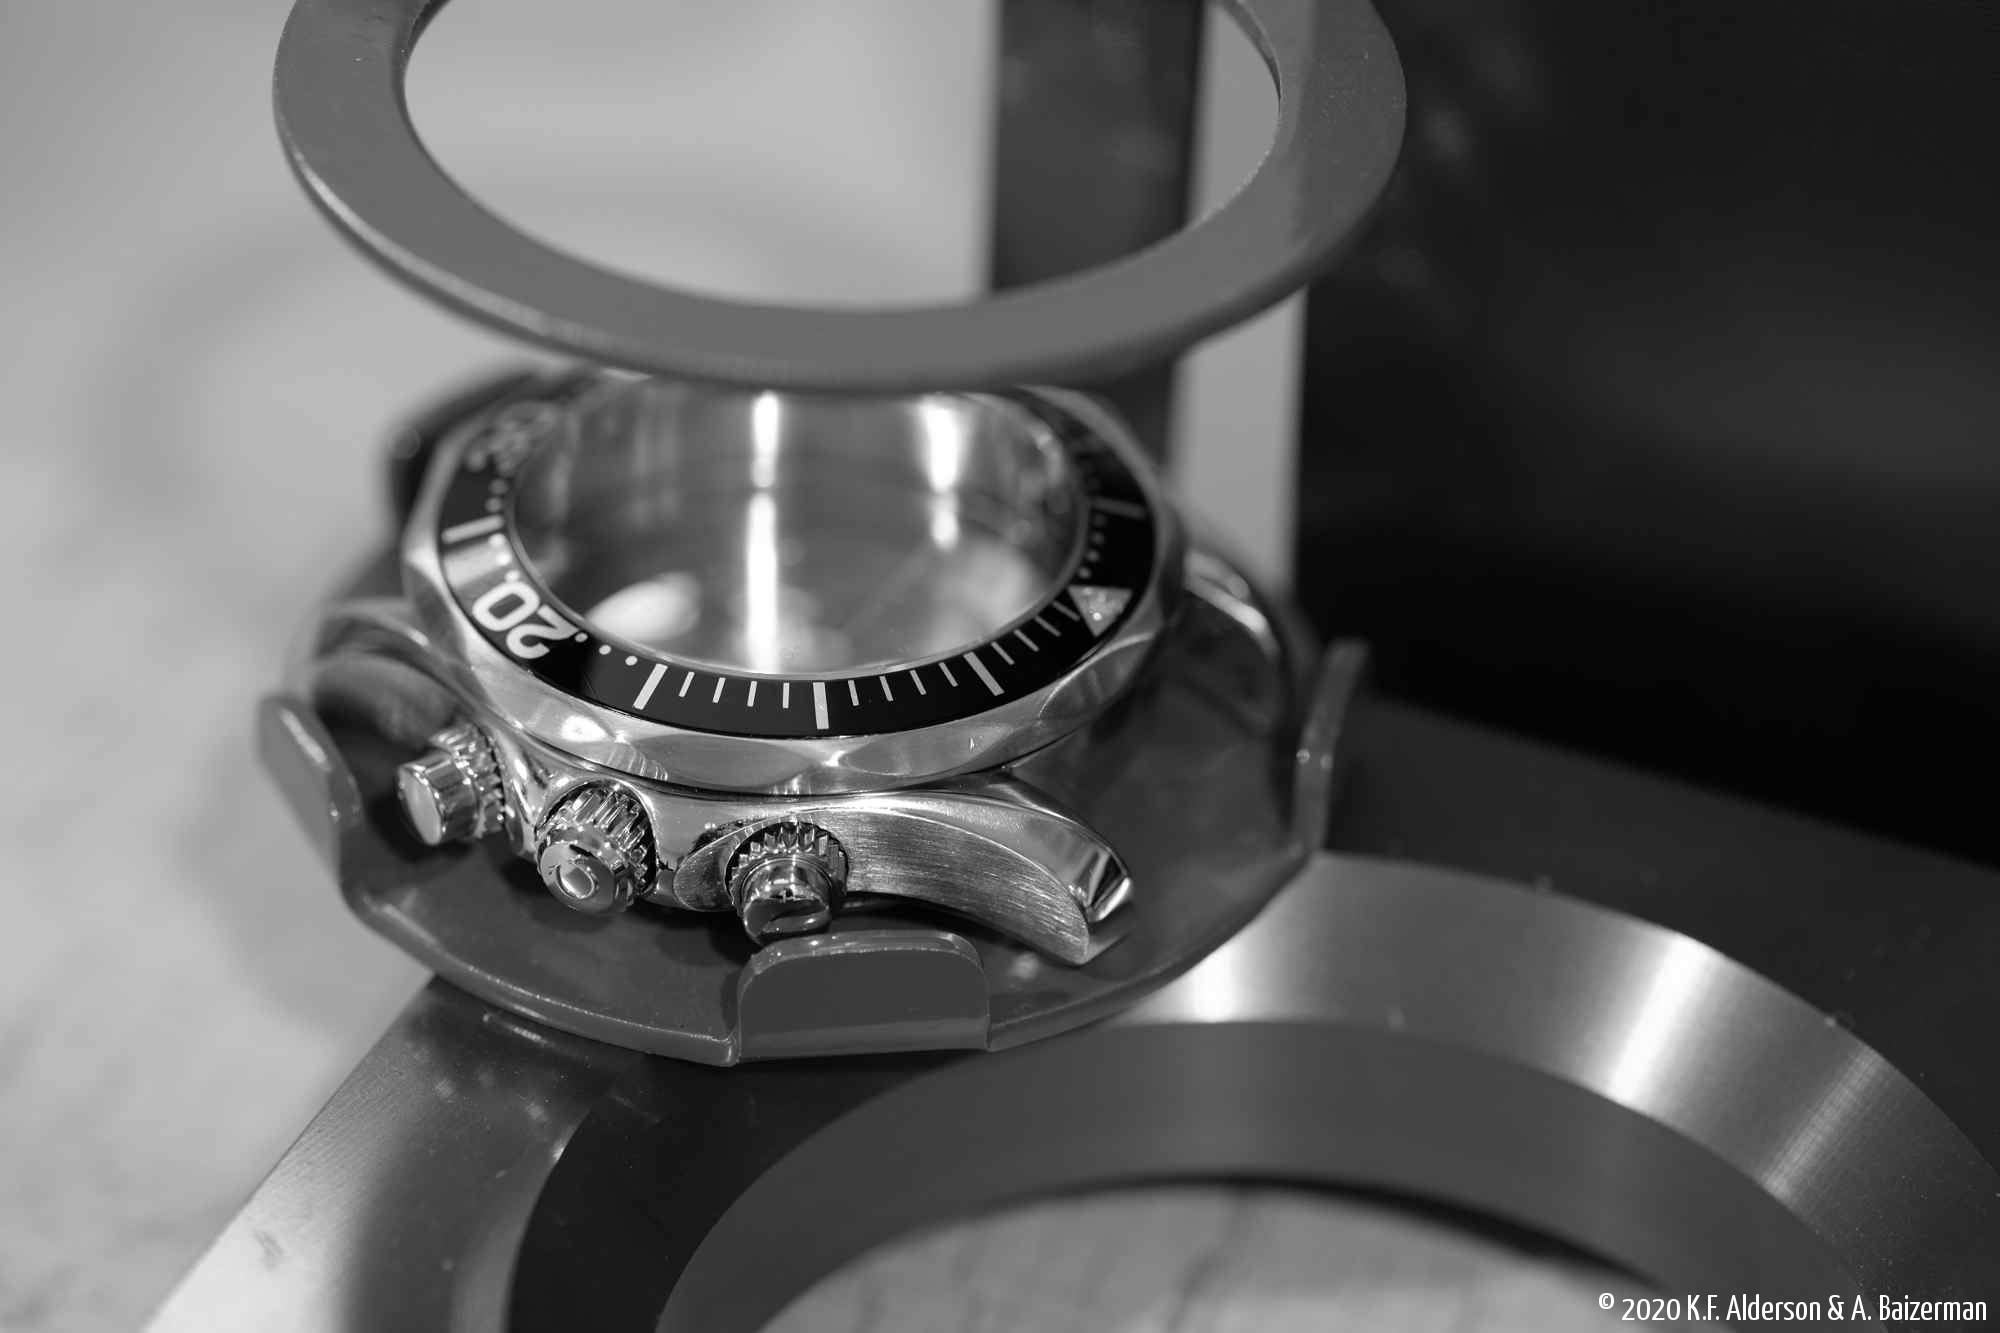 Closeup of diving chronograph